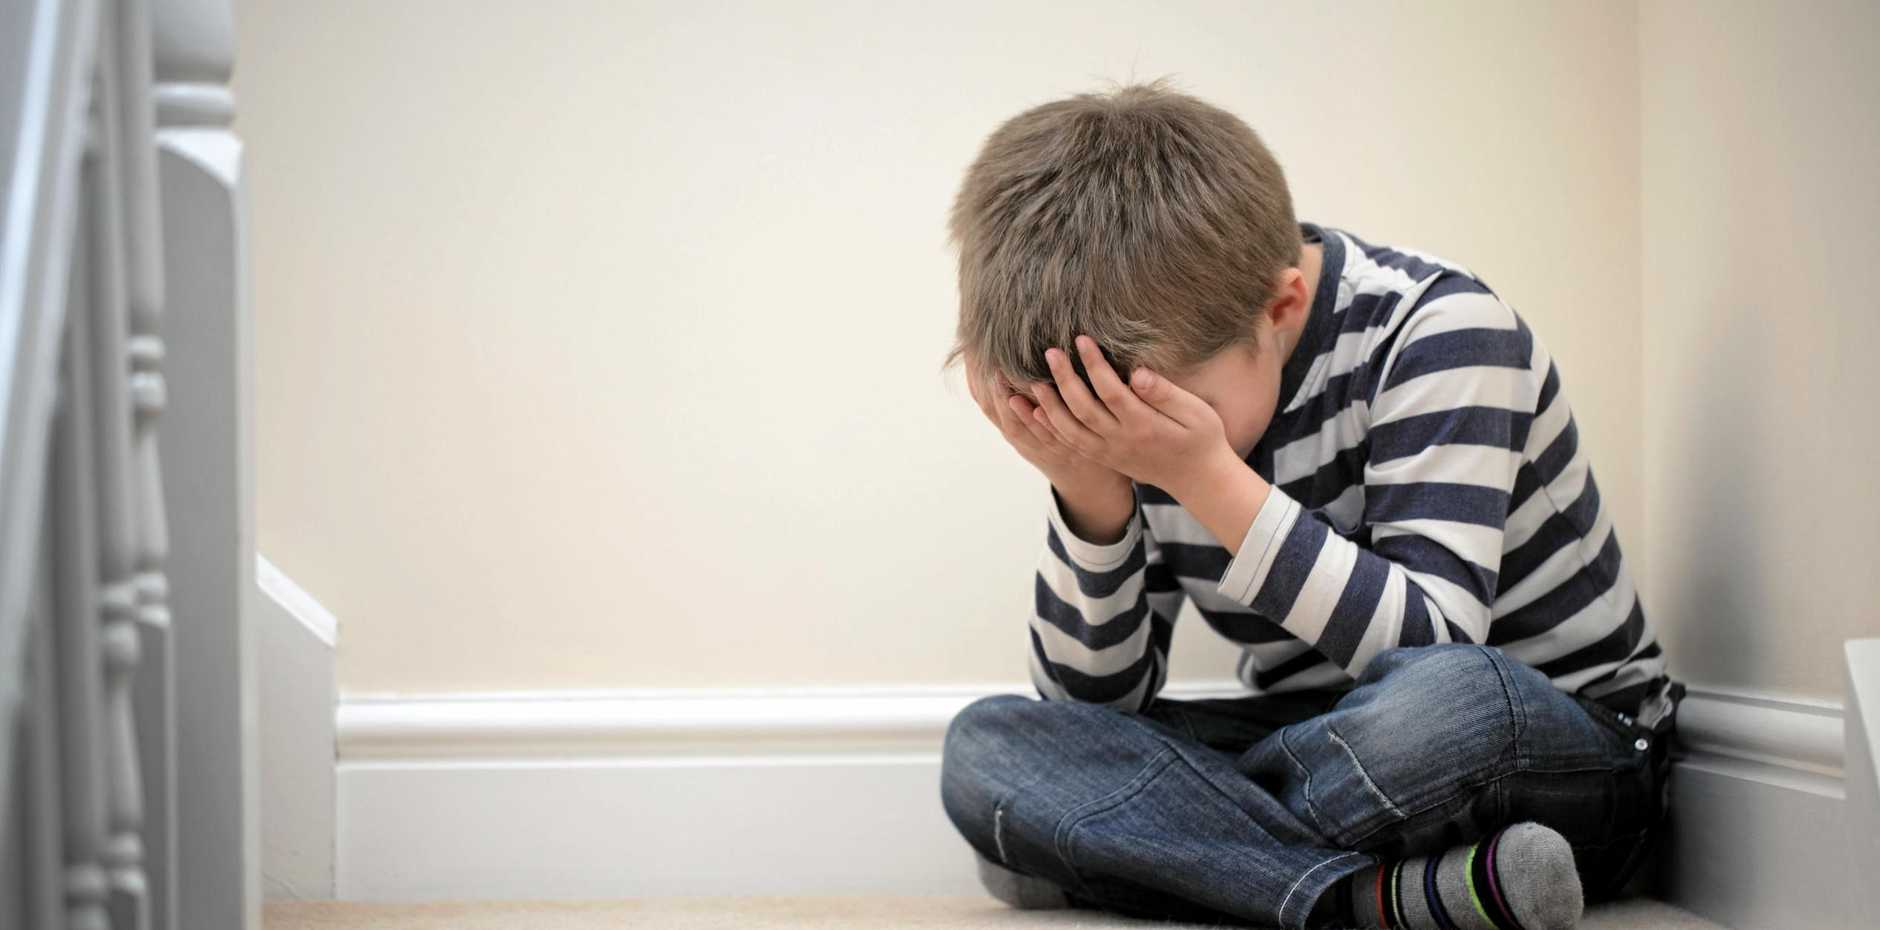 A man is appealing his child abuse conviction after abusing a boy for 13 years.